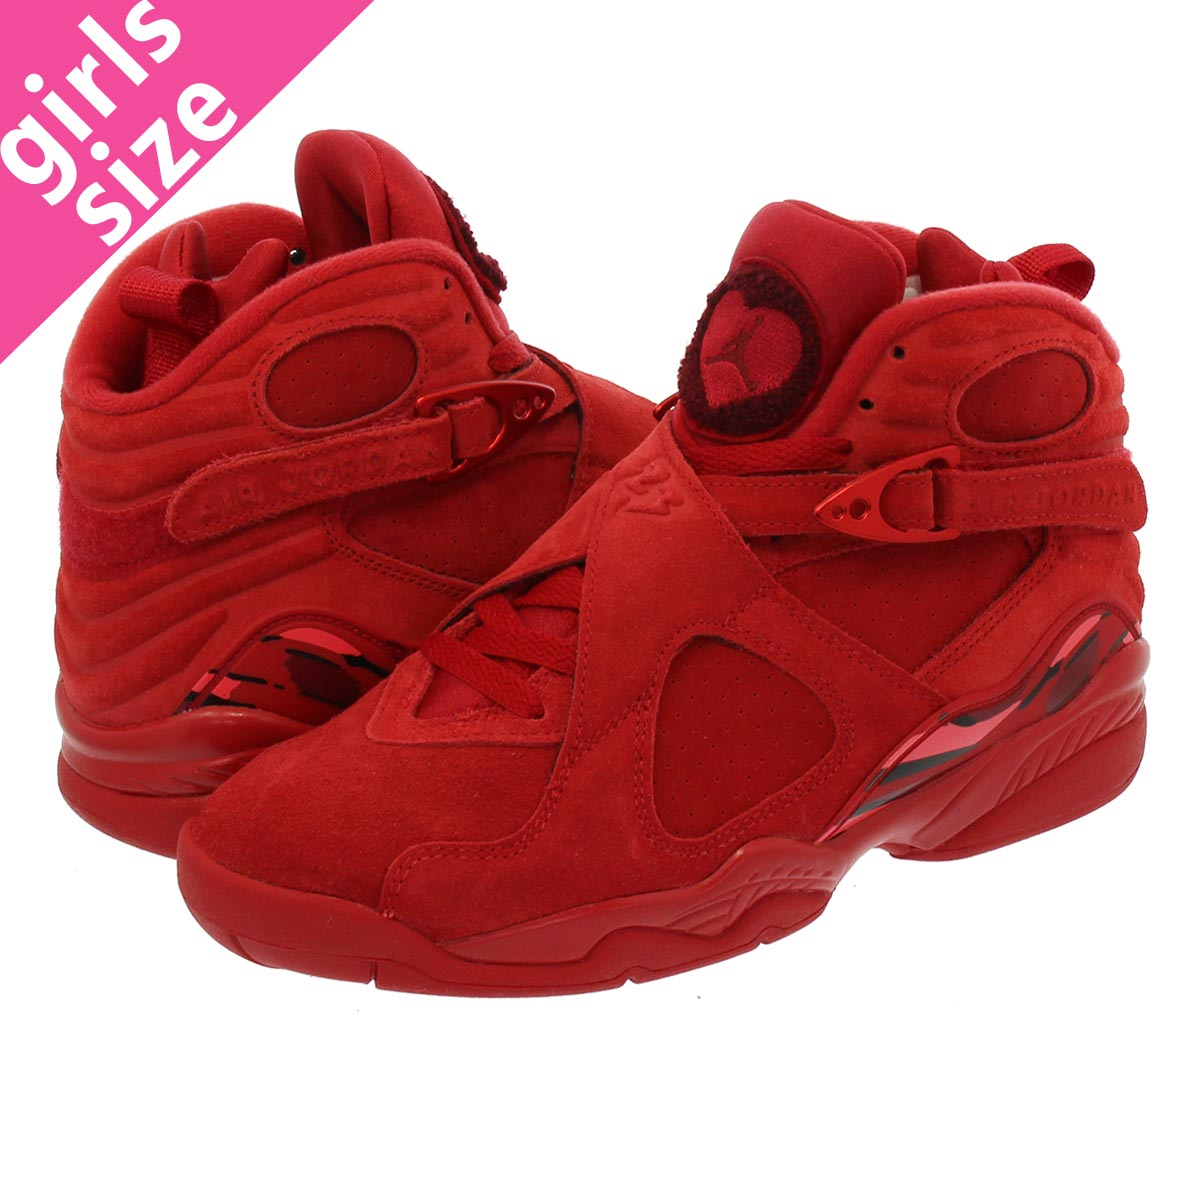 top fashion 0bc12 f98f2 NIKE WMNS AIR JORDAN 8 RETRO VDAY Nike women Air Jordan 8 nostalgic GYM  RED/EMBER GLOW/TEAM RED aq2449-614-l